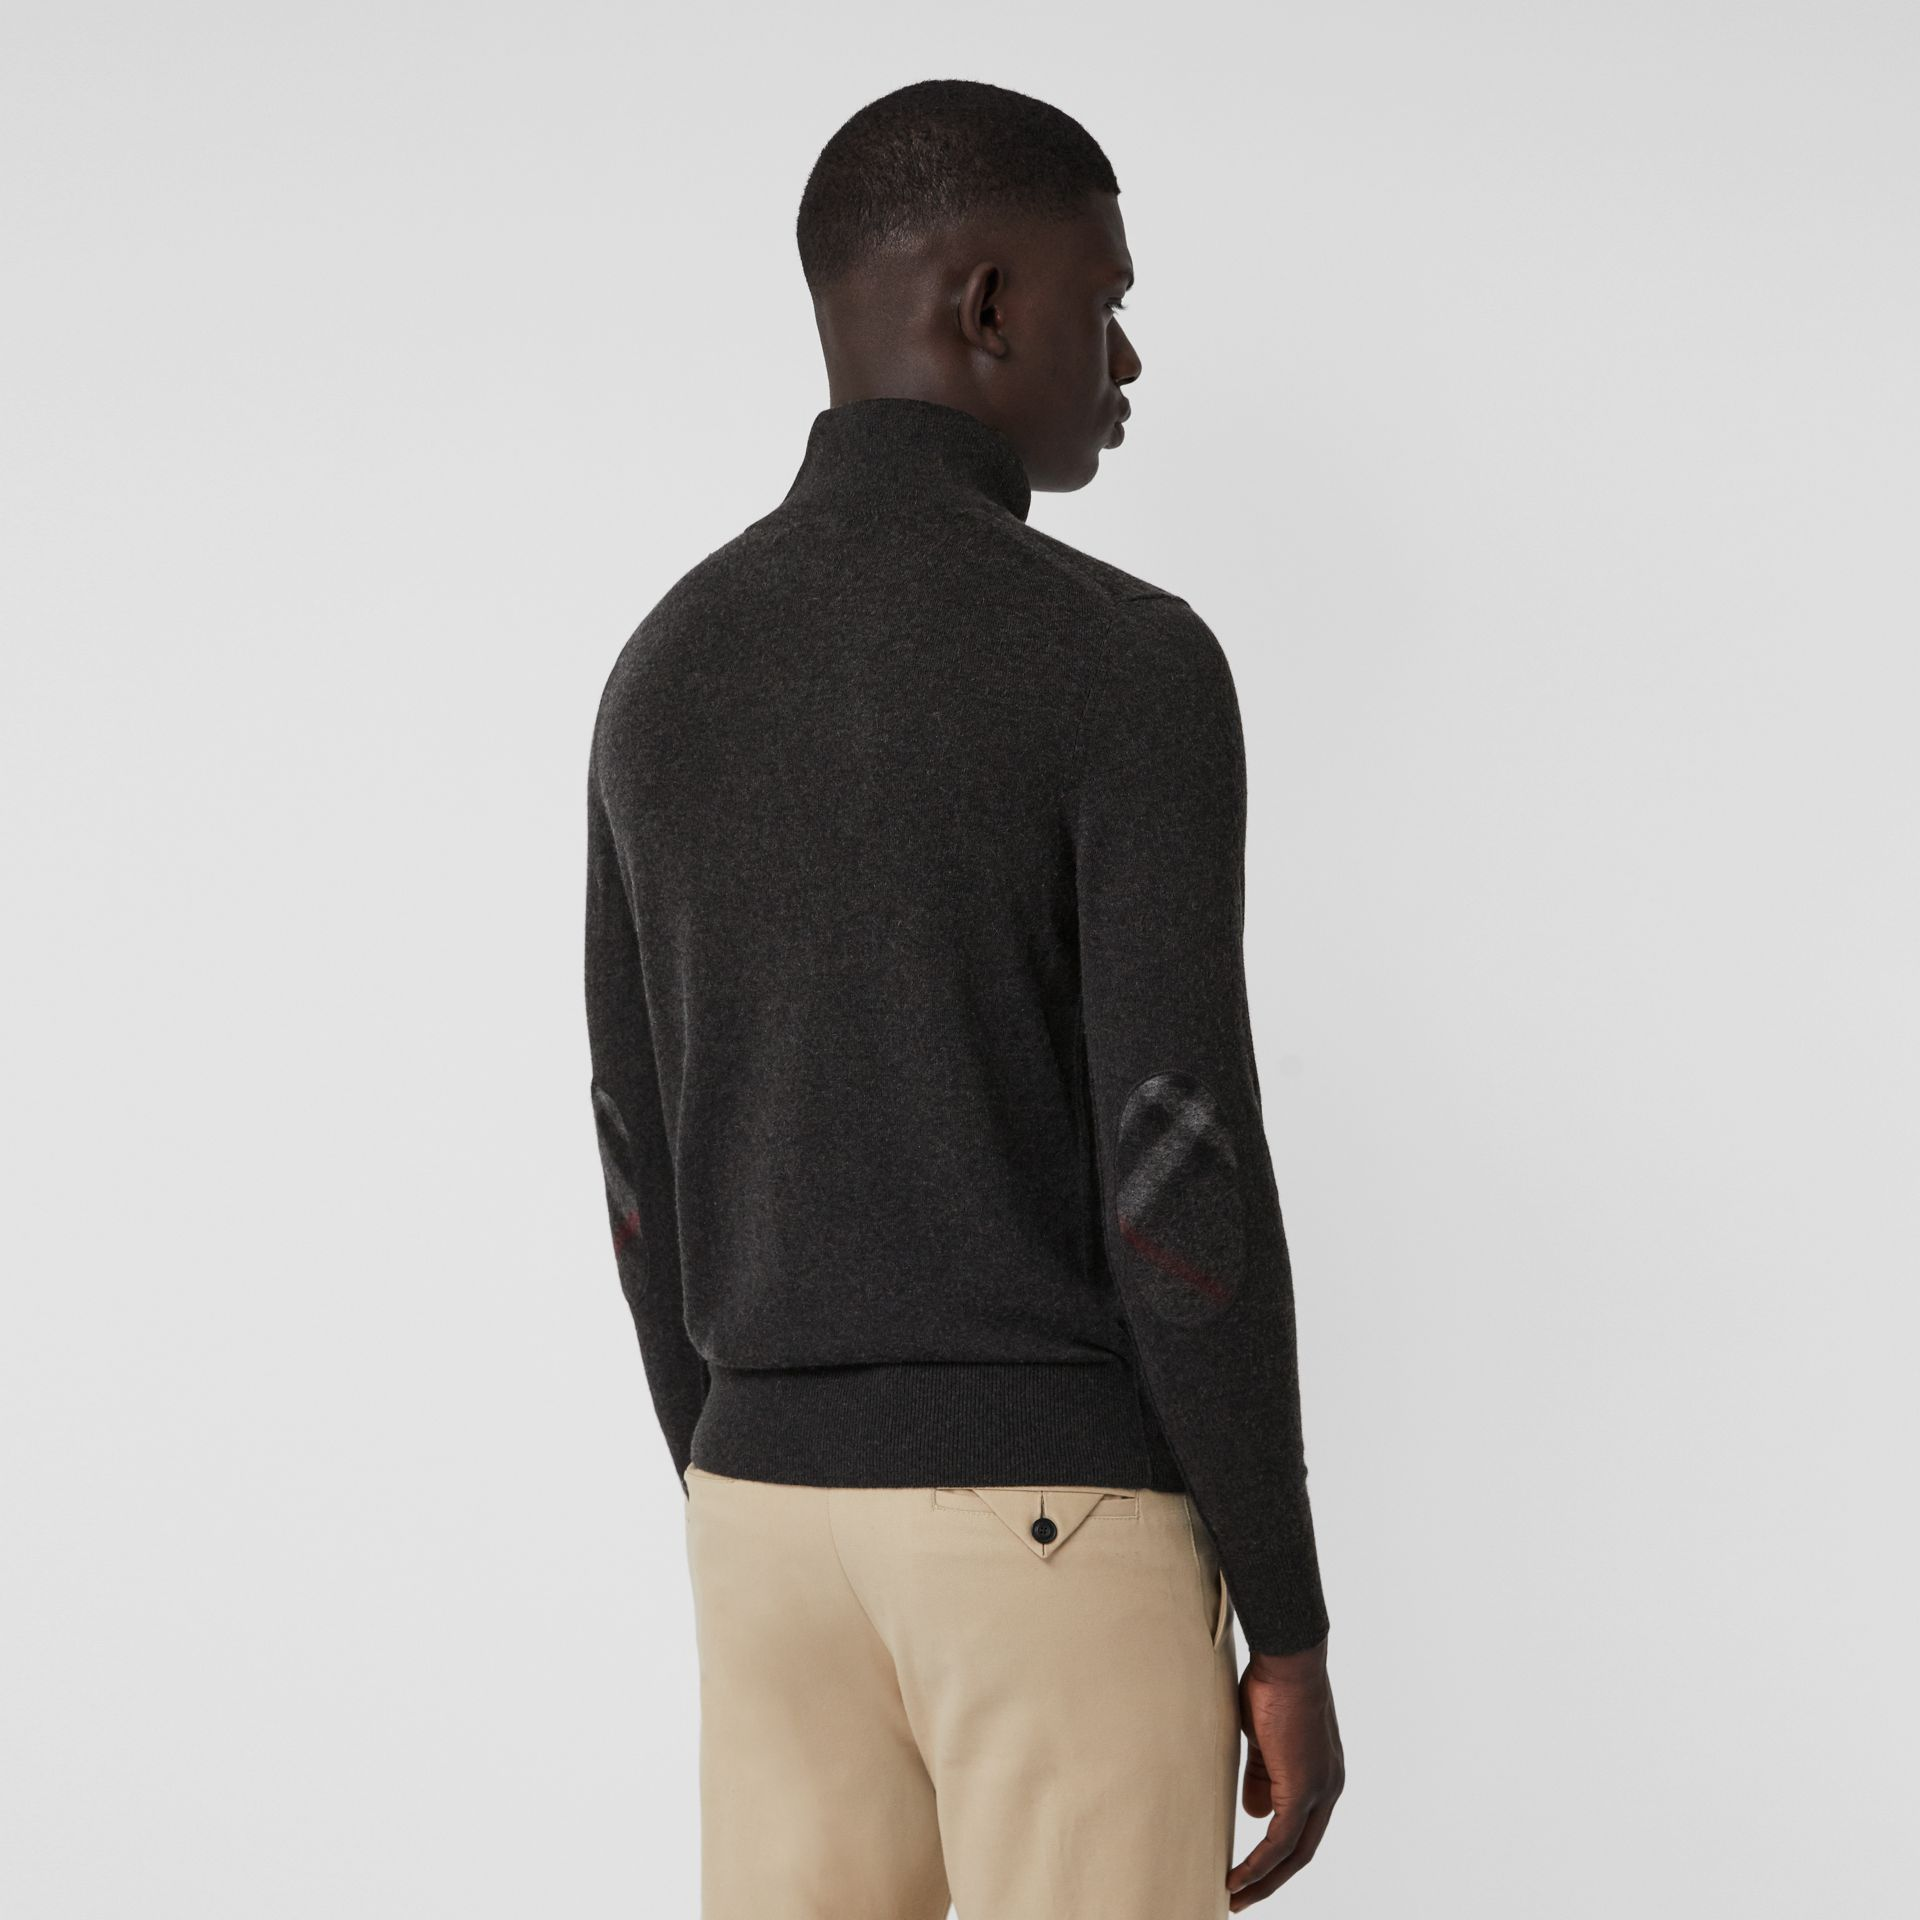 Zip-neck Cashmere Cotton Sweater in Charcoal - Men | Burberry Canada - gallery image 2